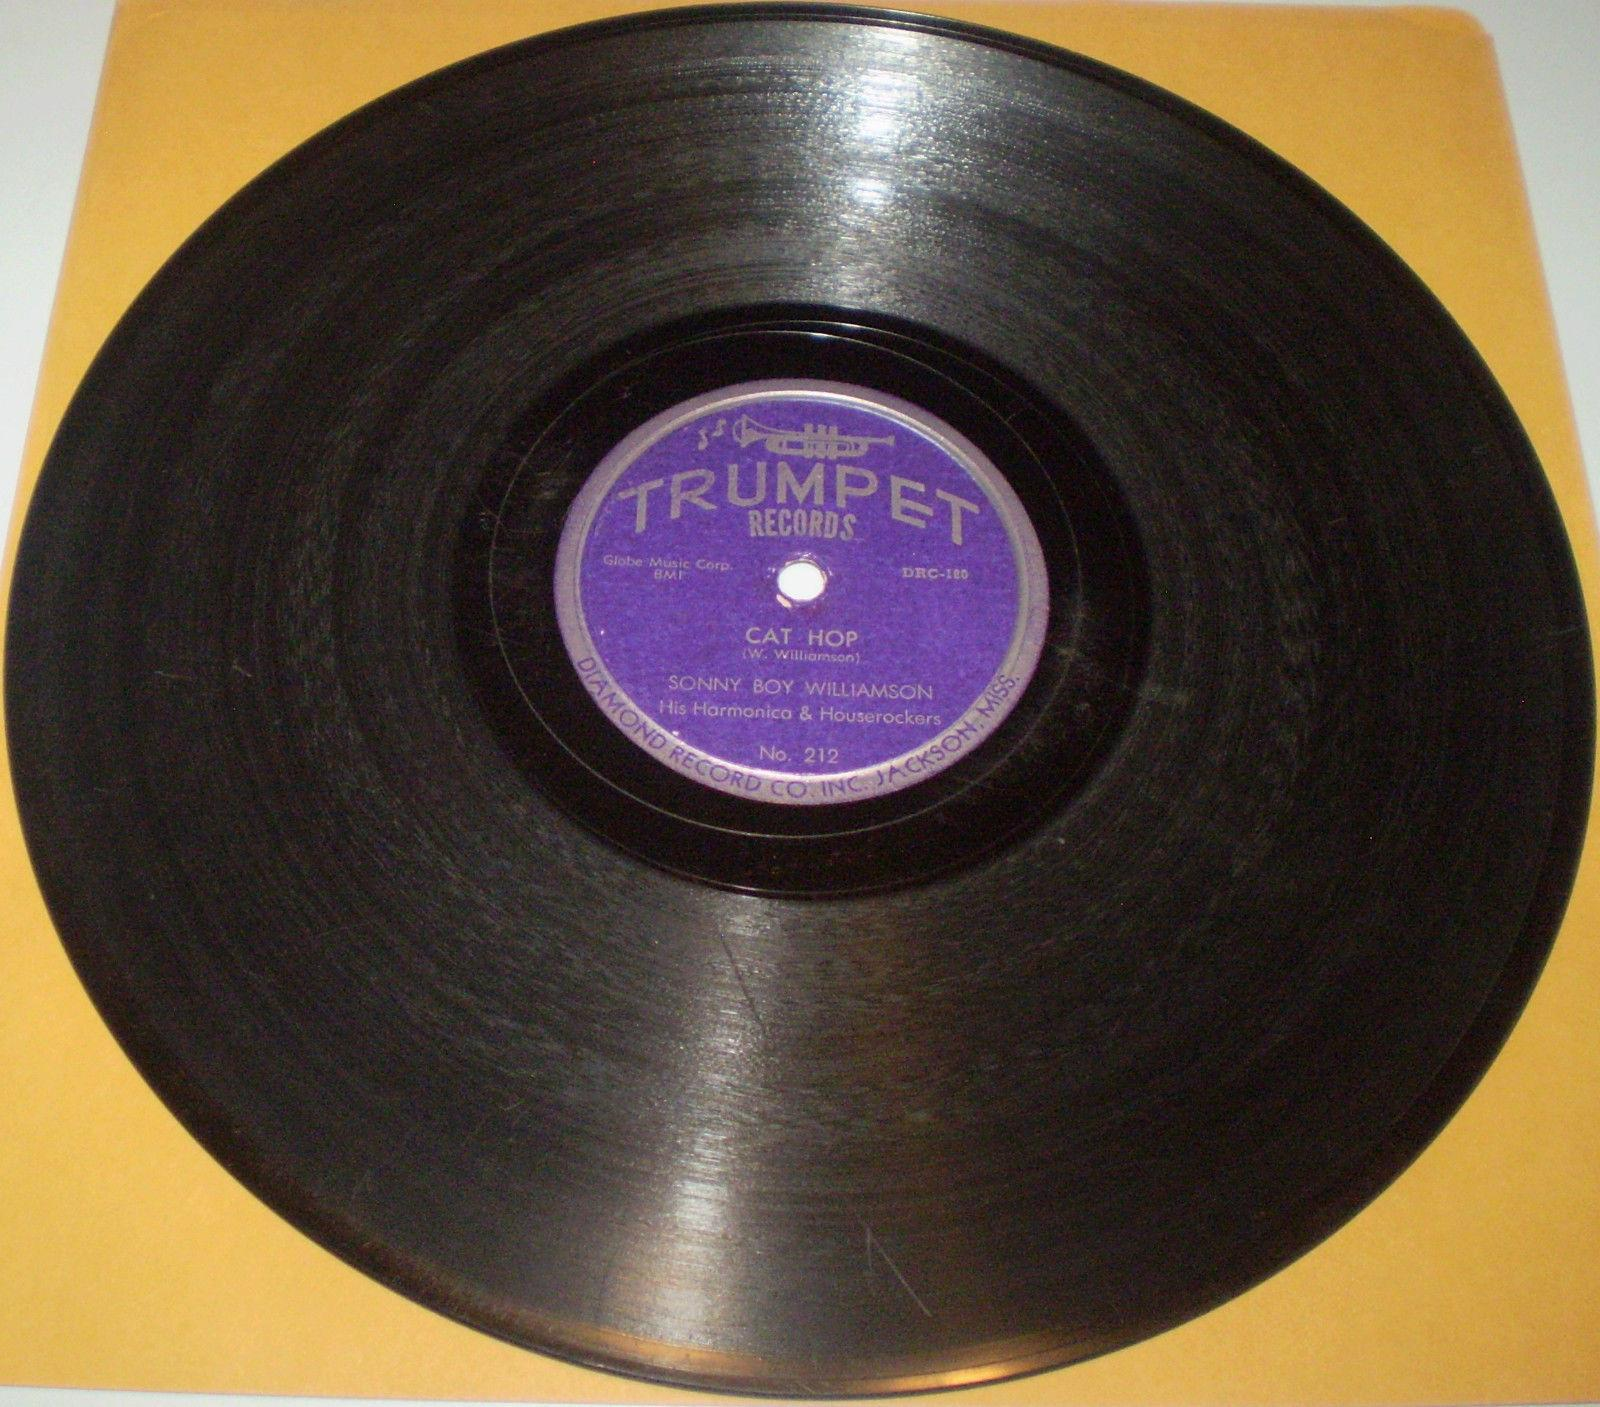 CAT HOP / TOO CLOSE TOGETHER Sonny Boy Williamson 78 TRUMPET 212 Jackson MS